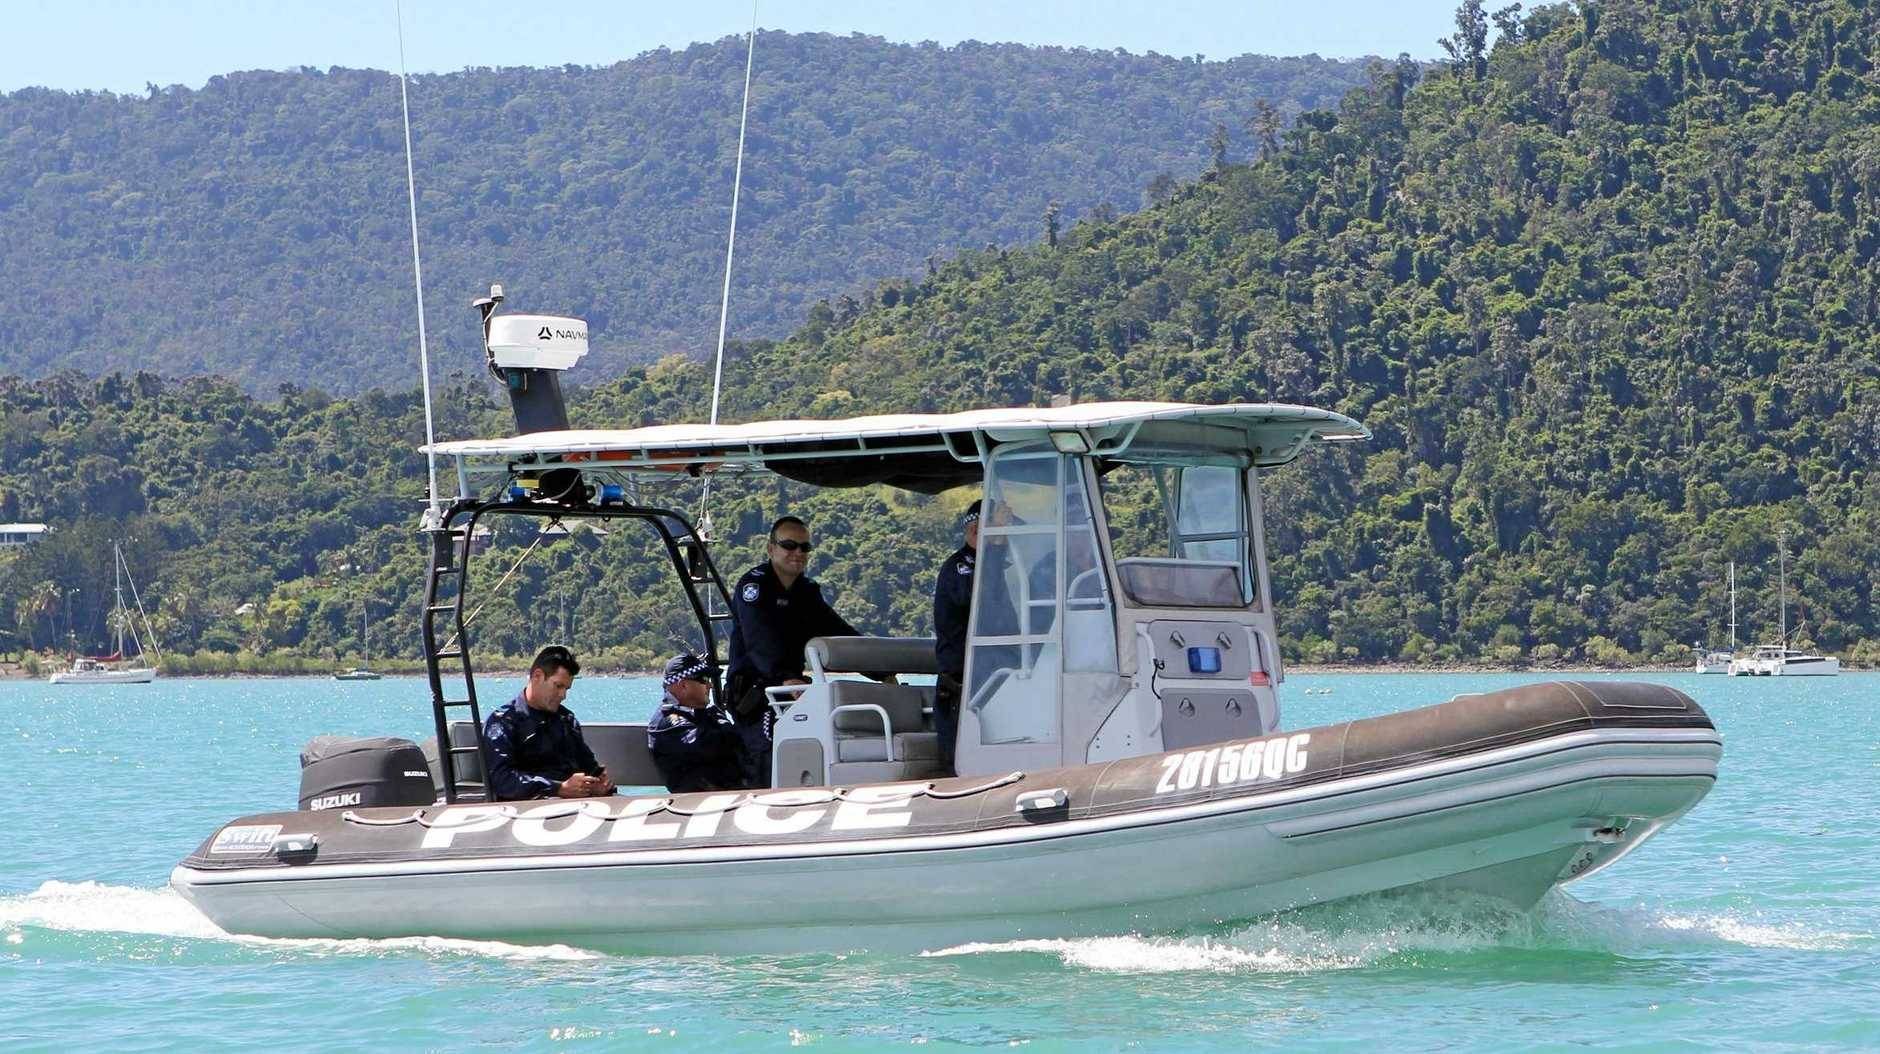 POLICE PRESENCE: Whitsunday Water Police regularly conduct breath tests on operators of vessels out on the water in the region.